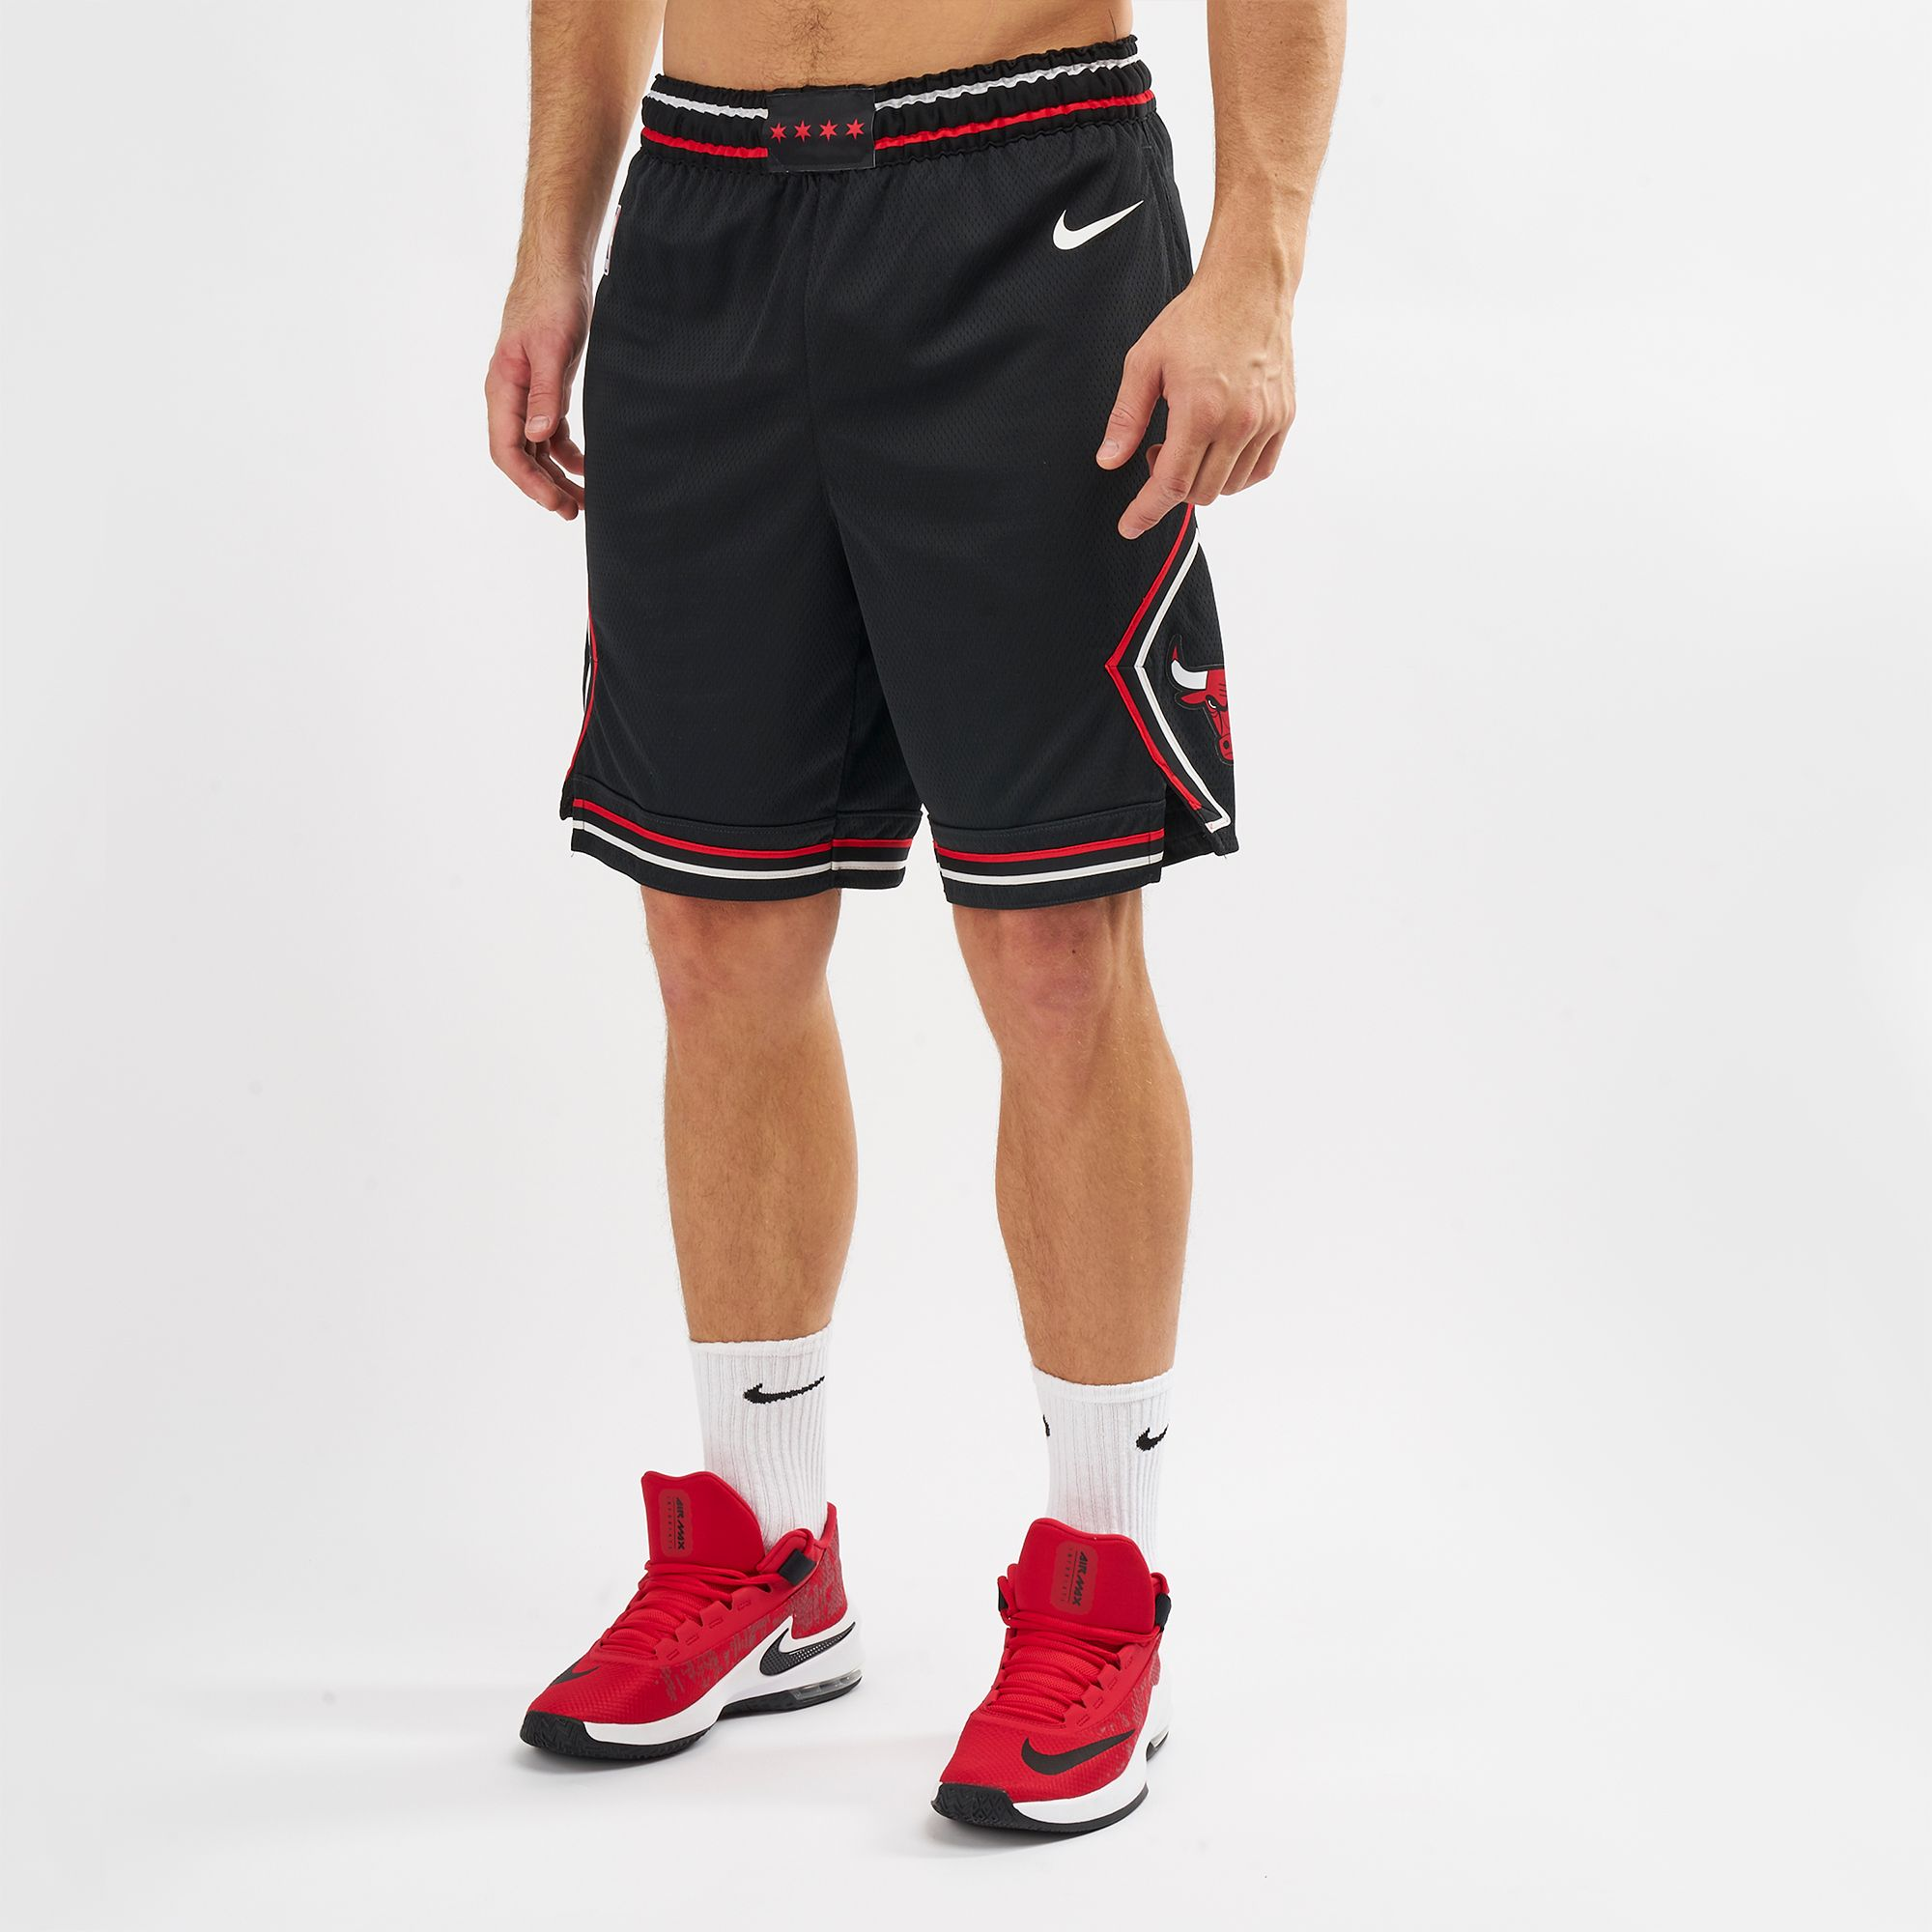 79ead266001 Nike NBA Chicago Bulls Statement Edition Swingman Shorts